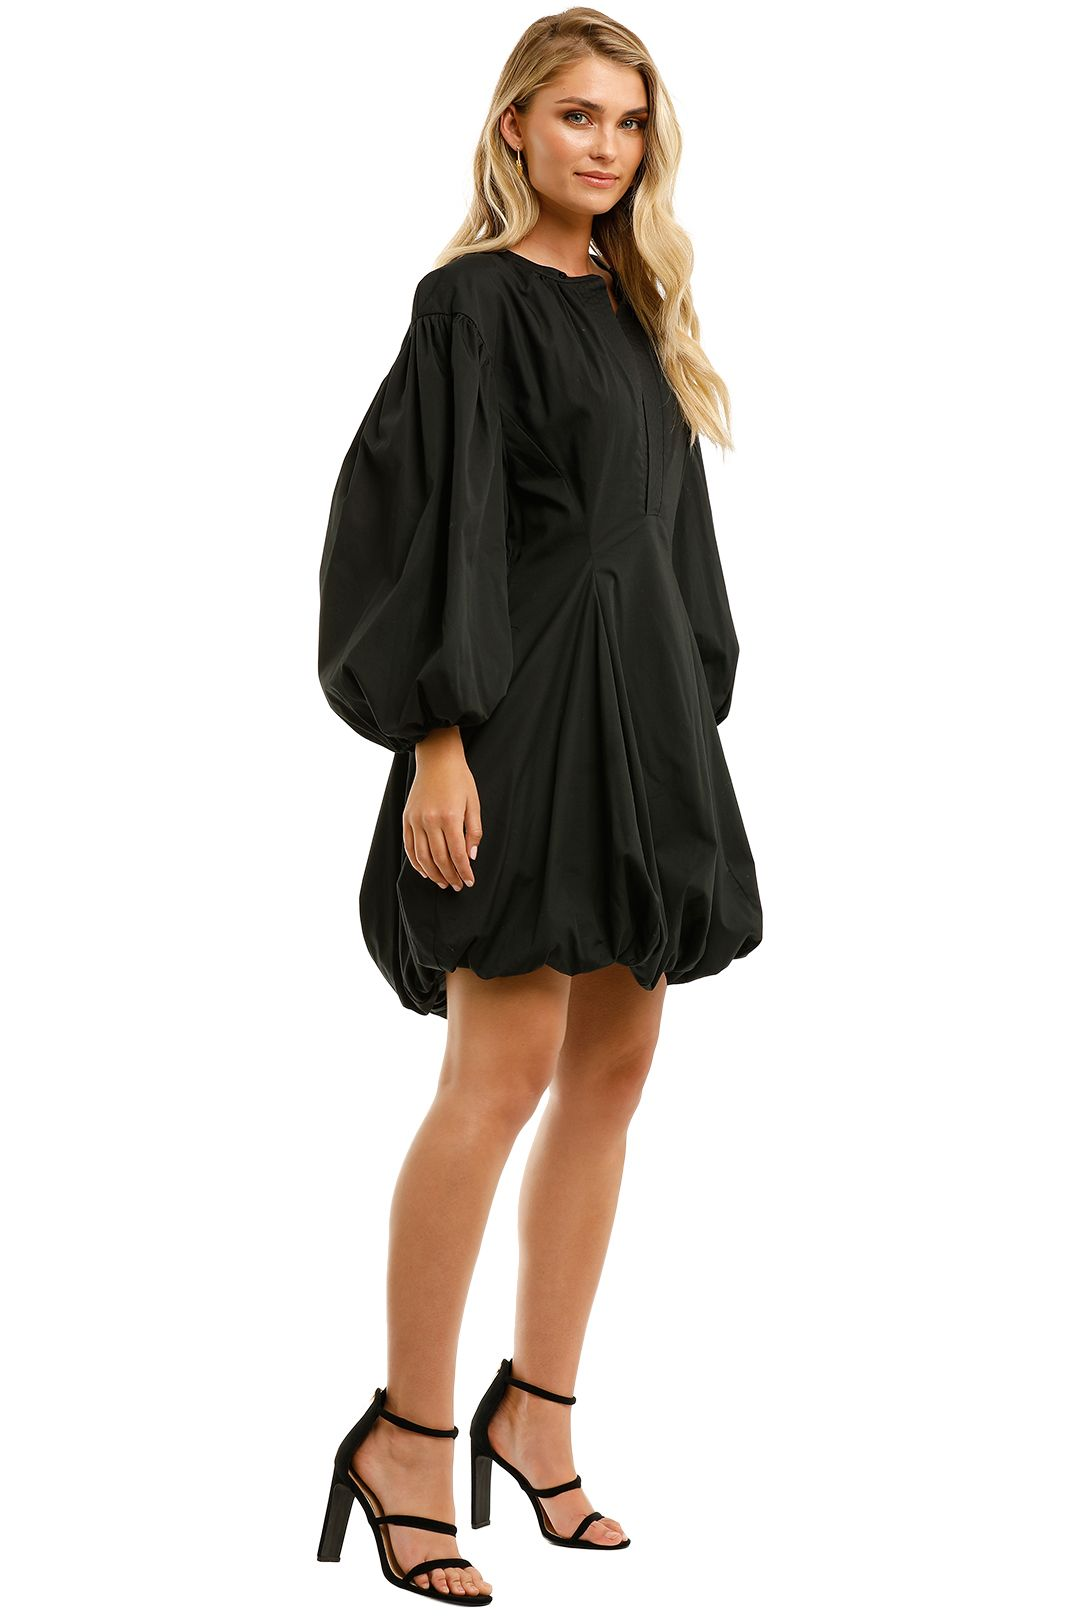 Bassike-Black-Cotton-Gathered-Sleeve-Dress-Black-Side